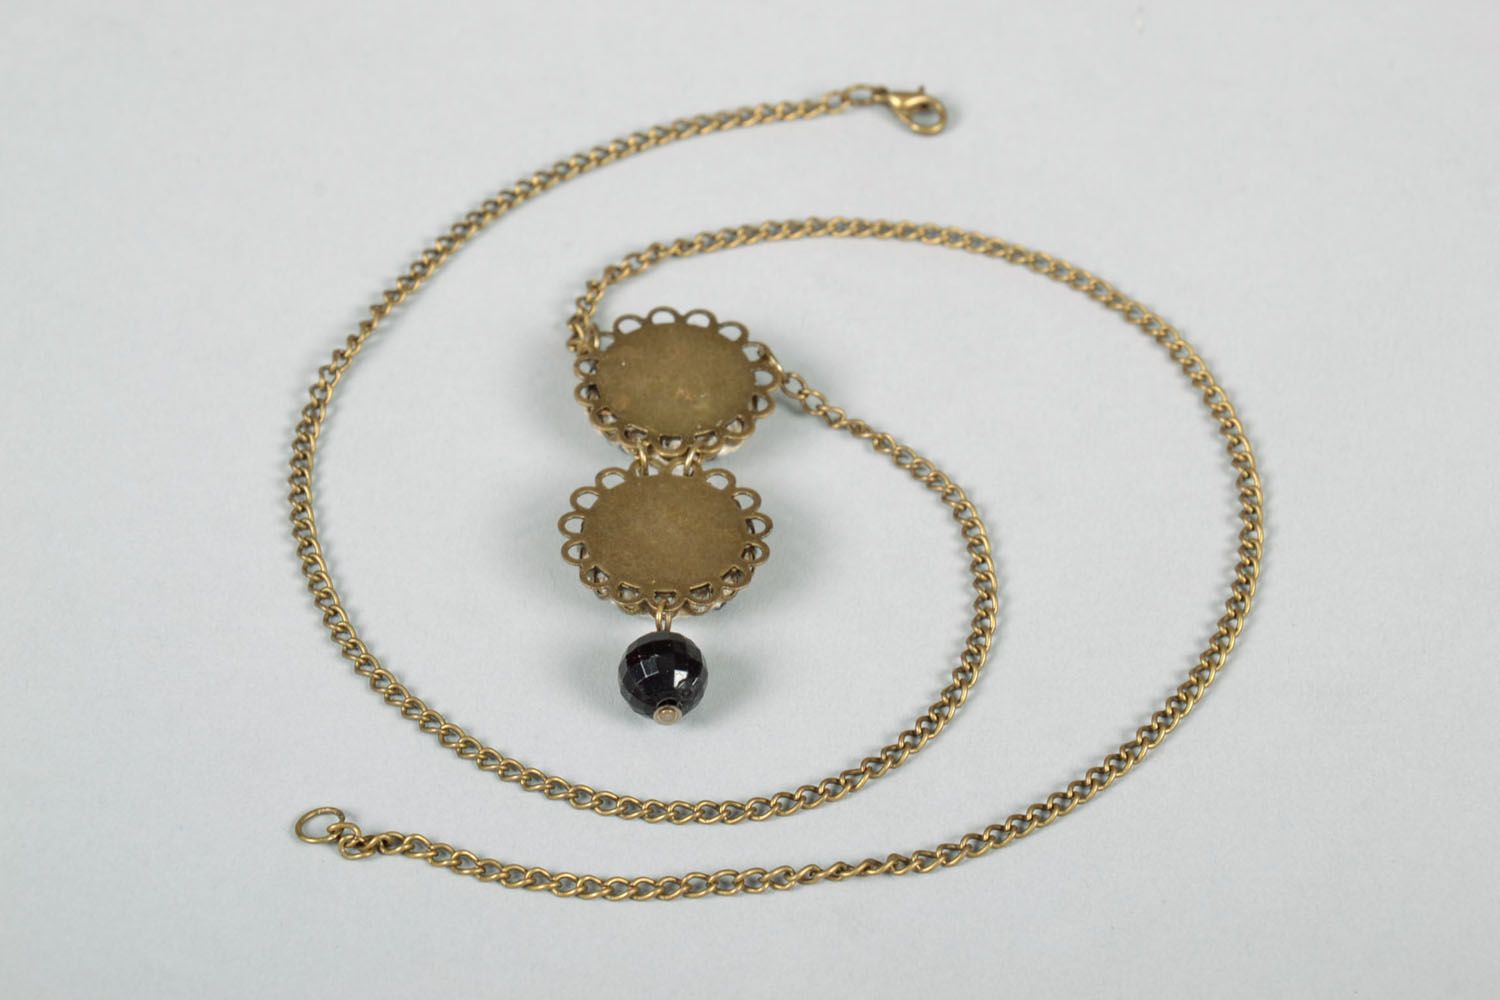 Pendant on a chain photo 4